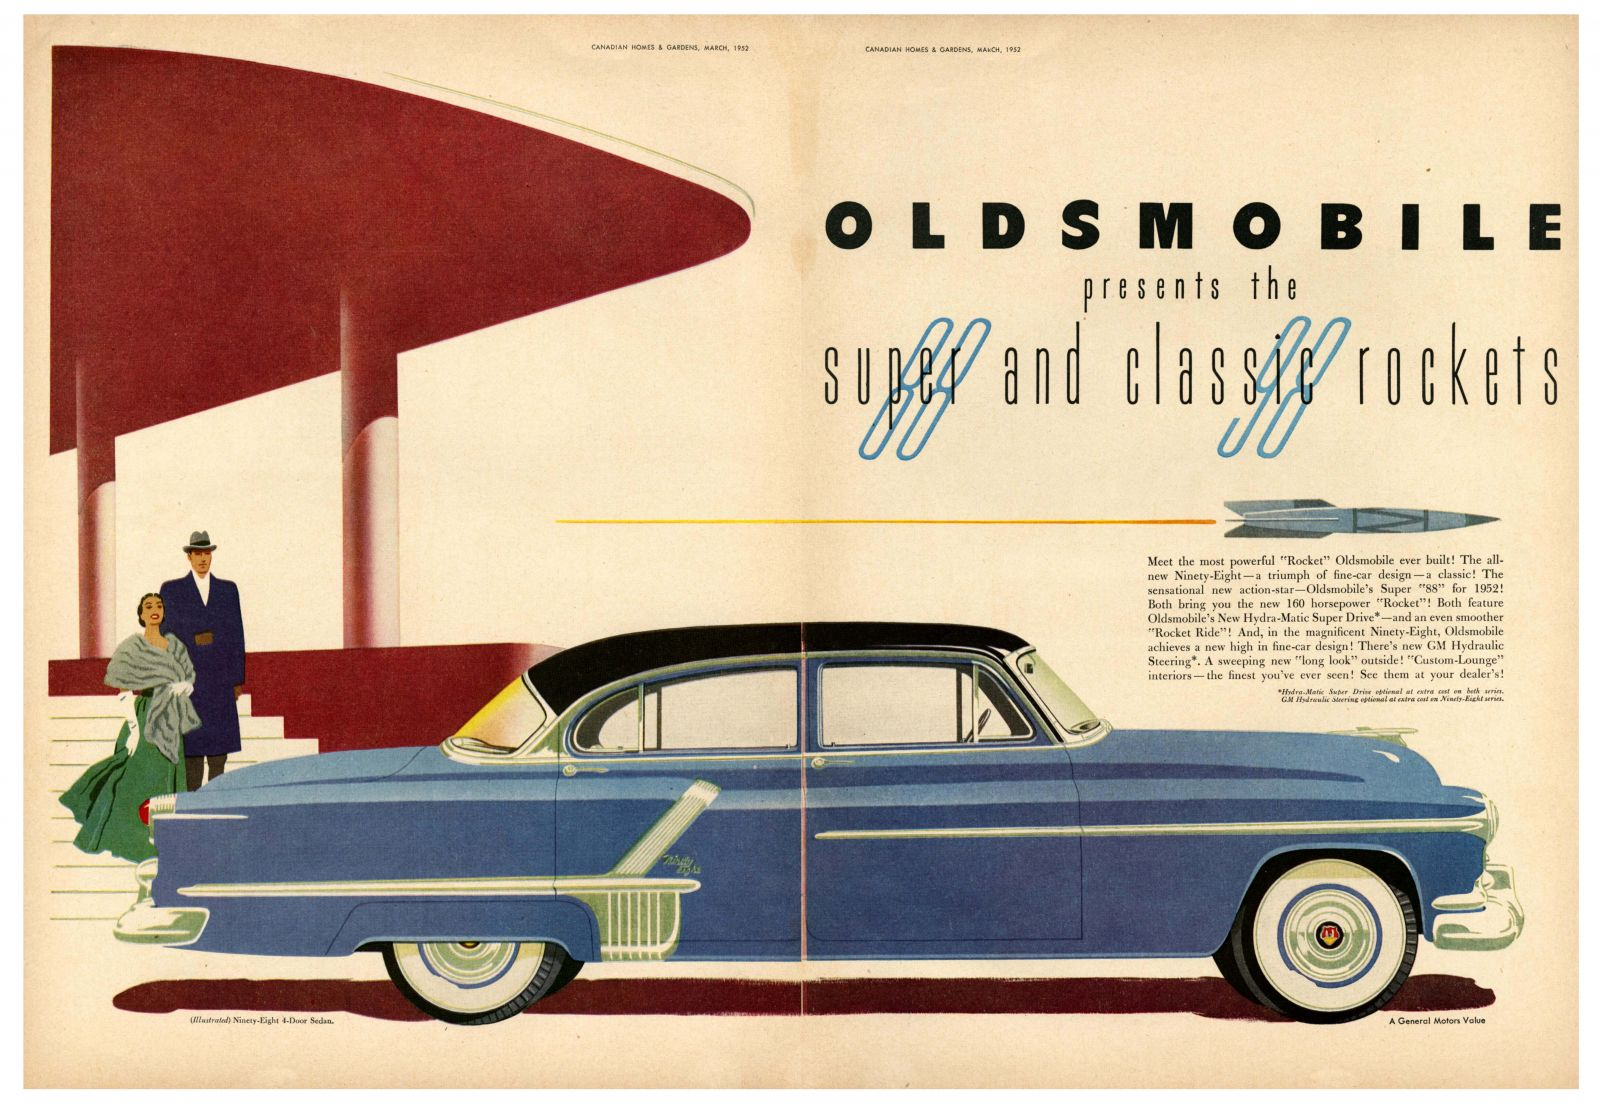 Super & Classic Rockets, Oldsmobile, 1952